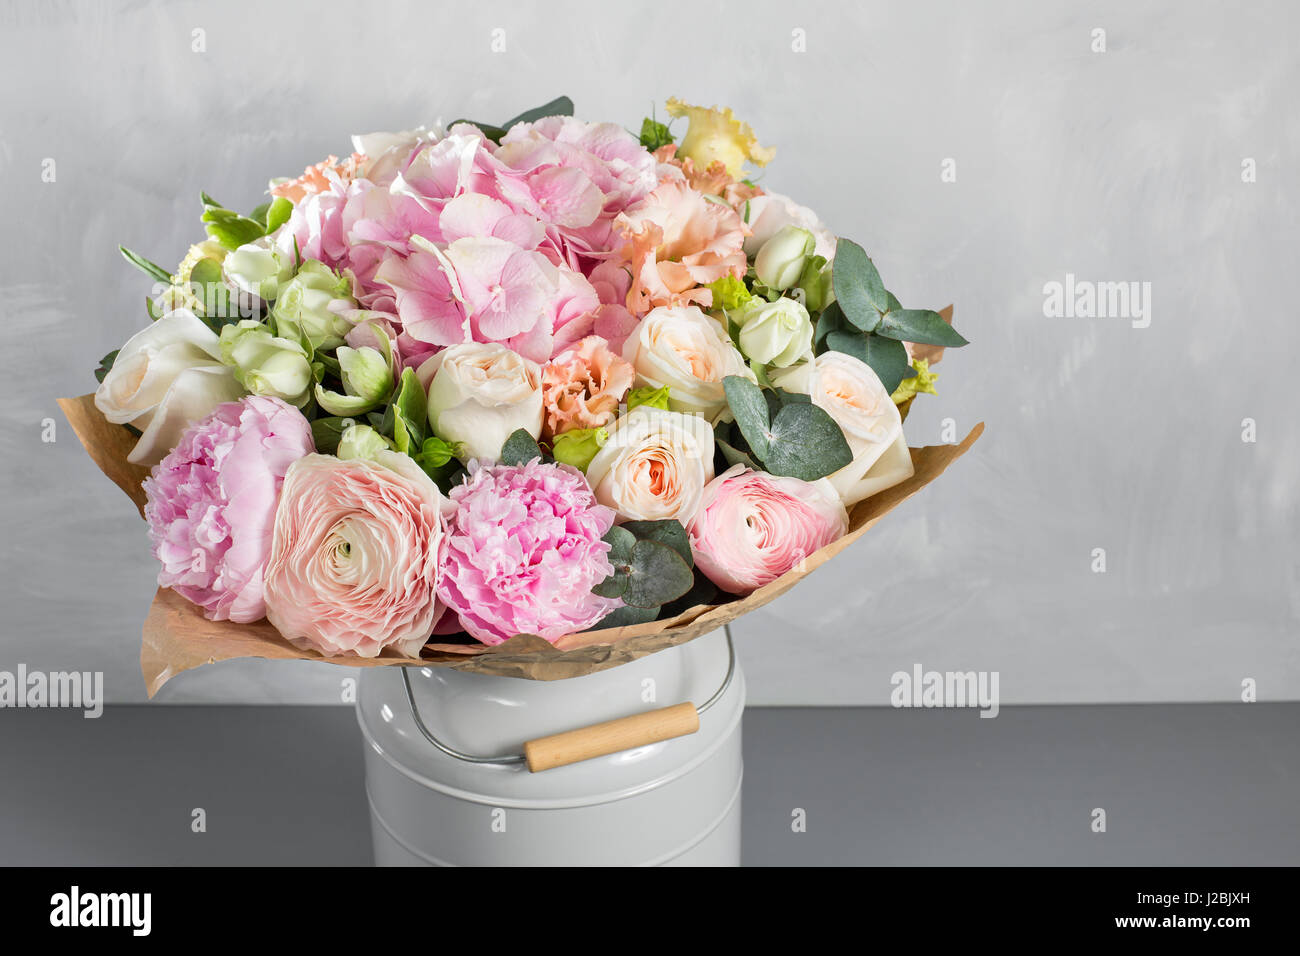 Still life with a bouquet of flowers. the florist put together a beautiful bunch of flowers. Man manual work used - Stock Image